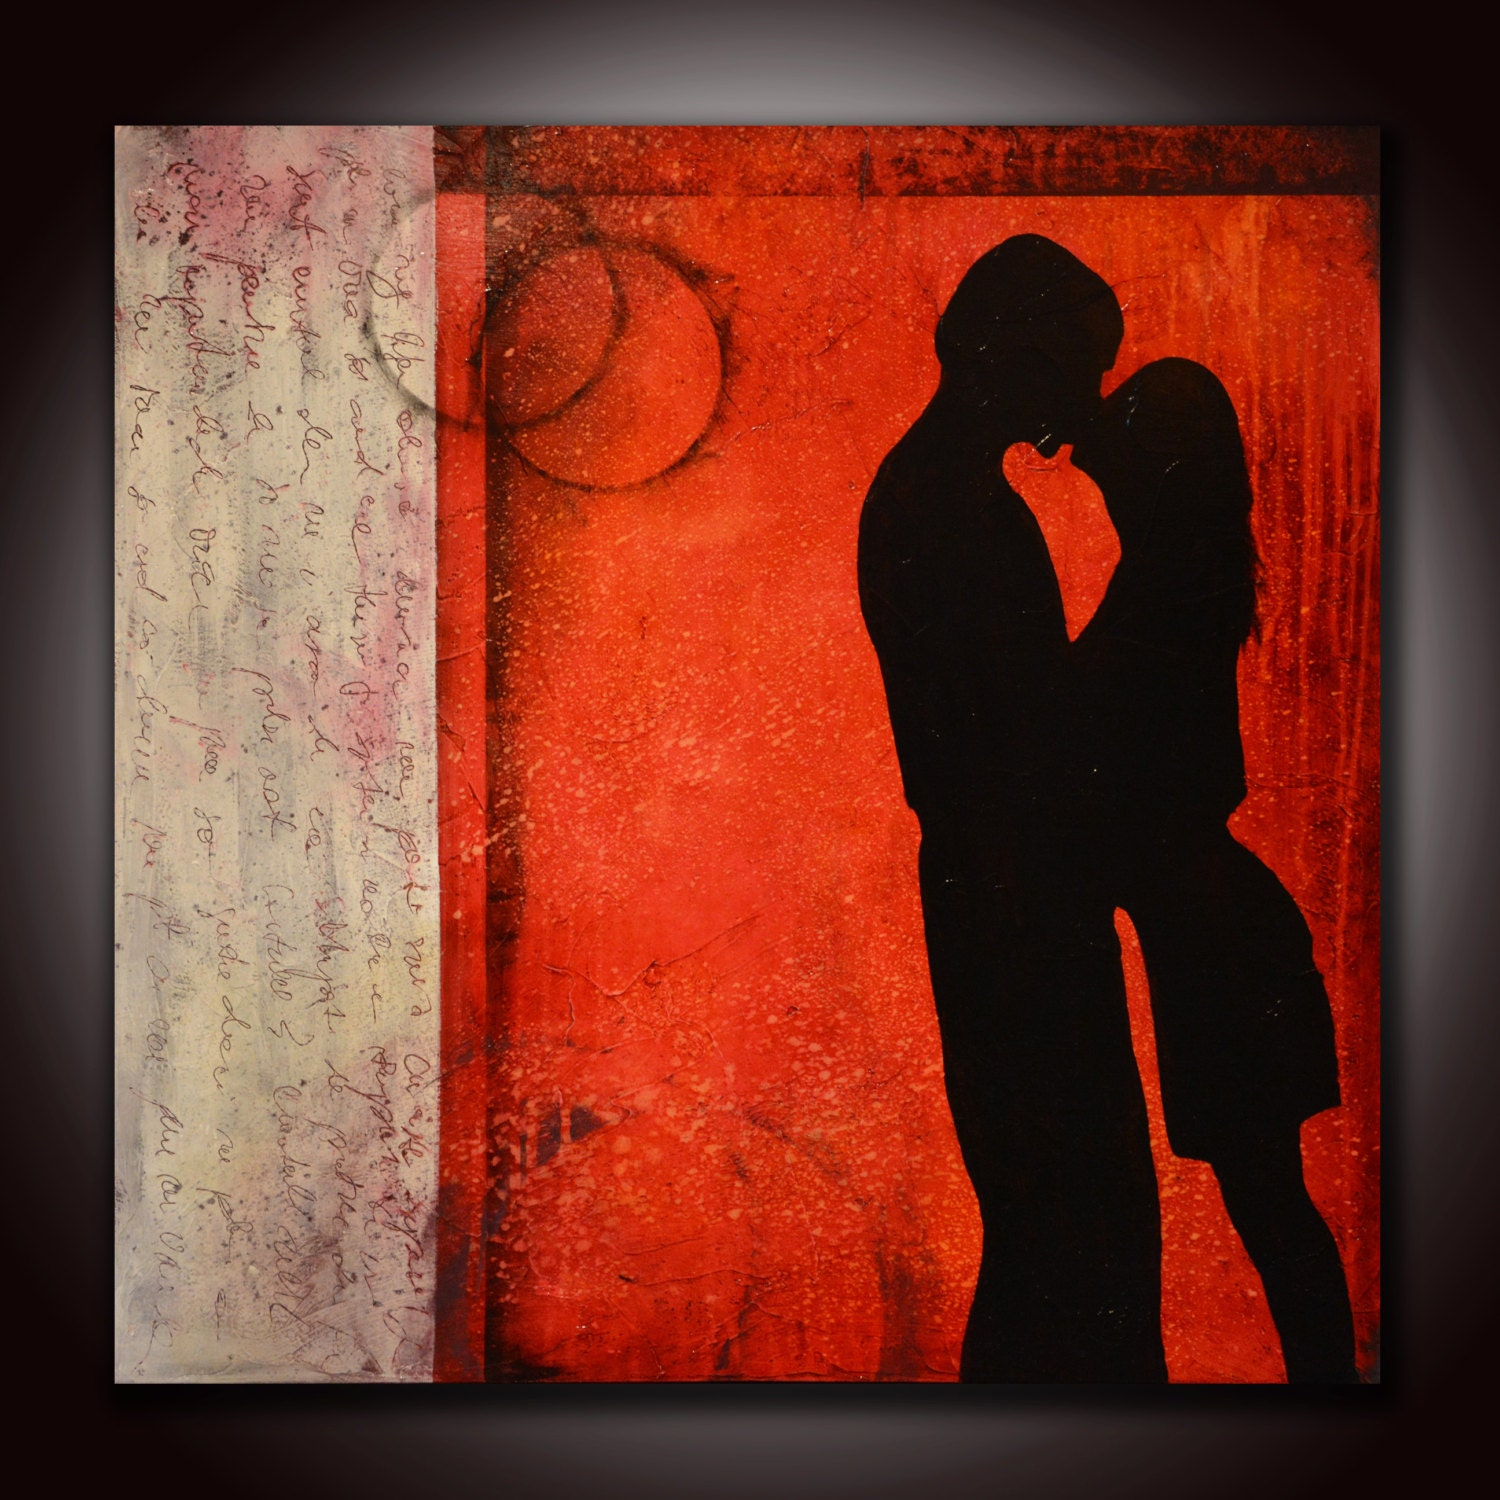 Red Feng Shui To Attract Love Lovers Painting Motivational Art